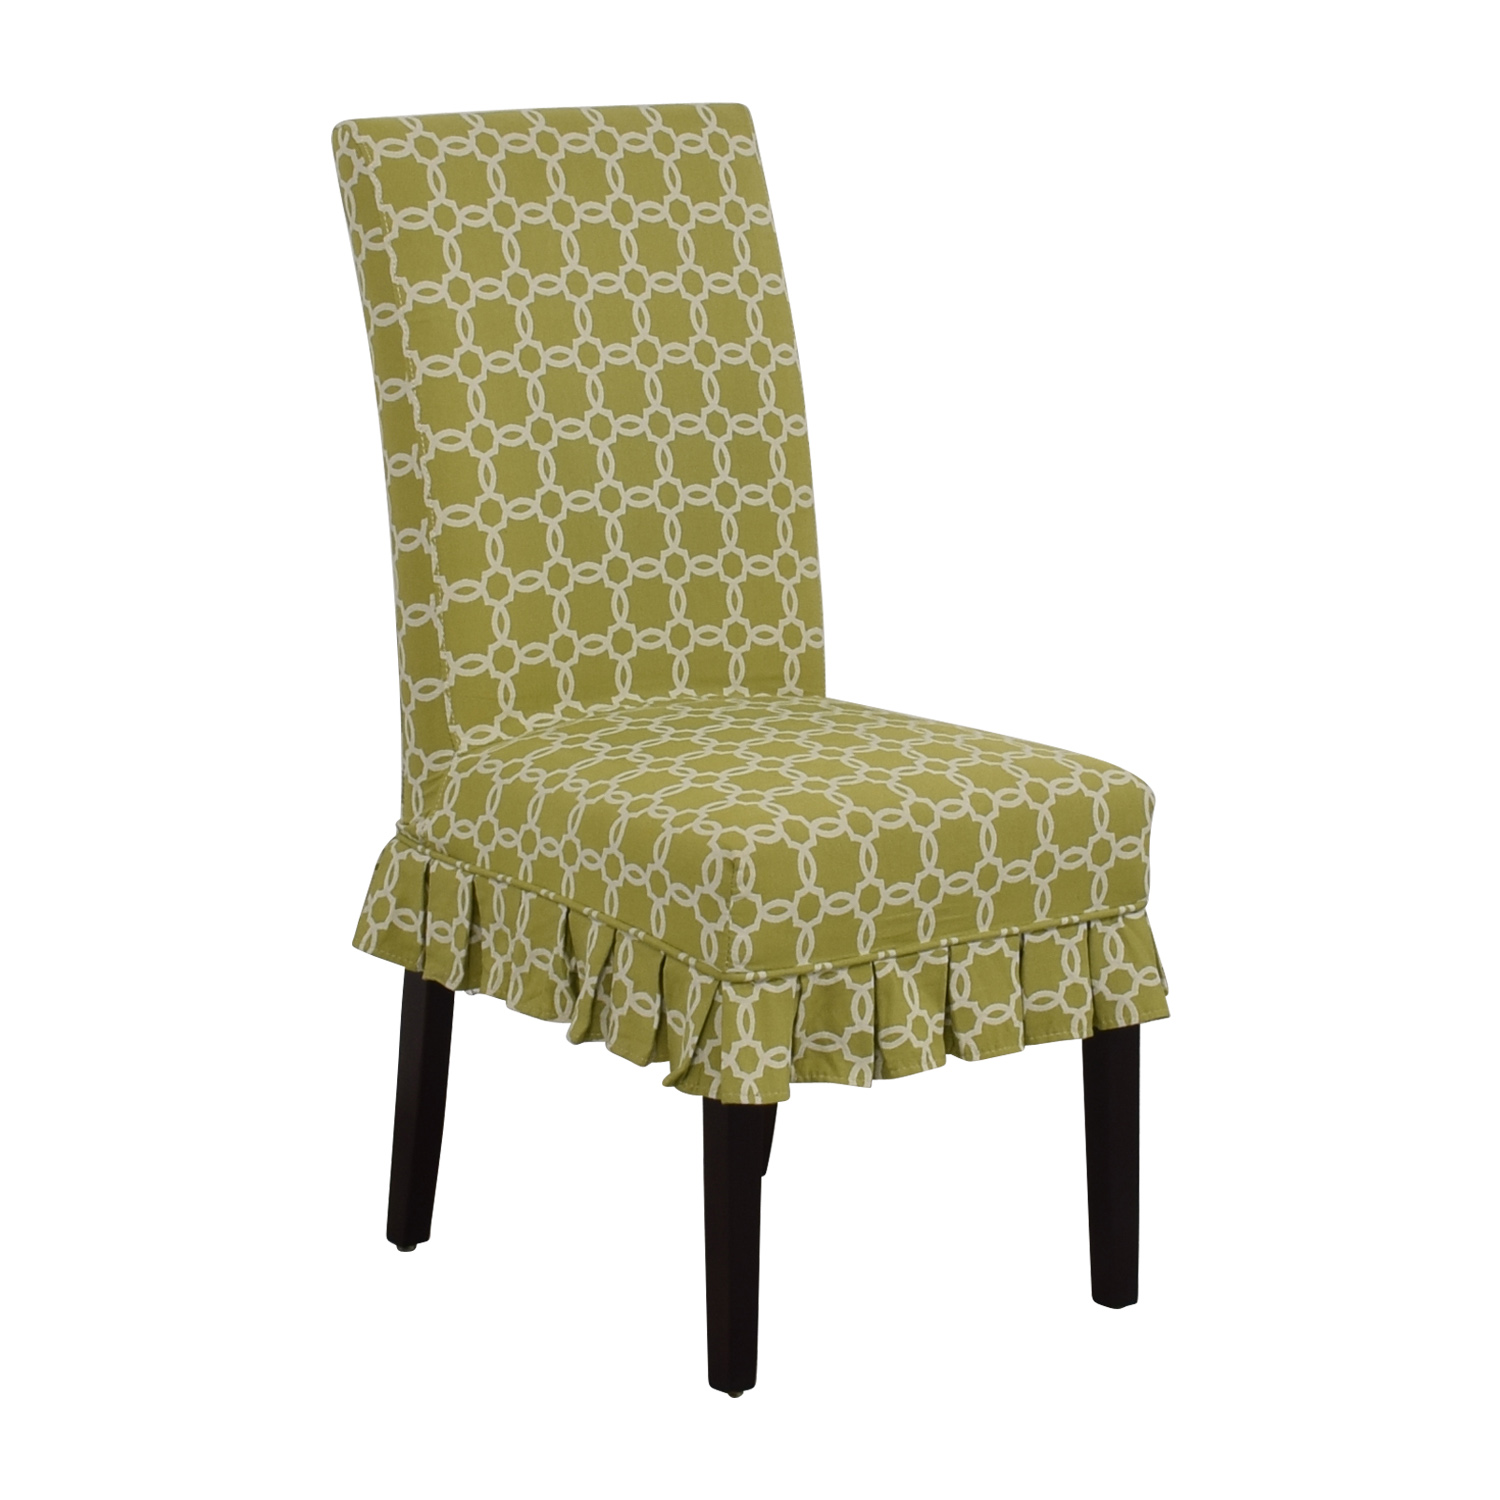 90% OFF - Pier 1 Pier 1 Green Accent Chair / Chairs